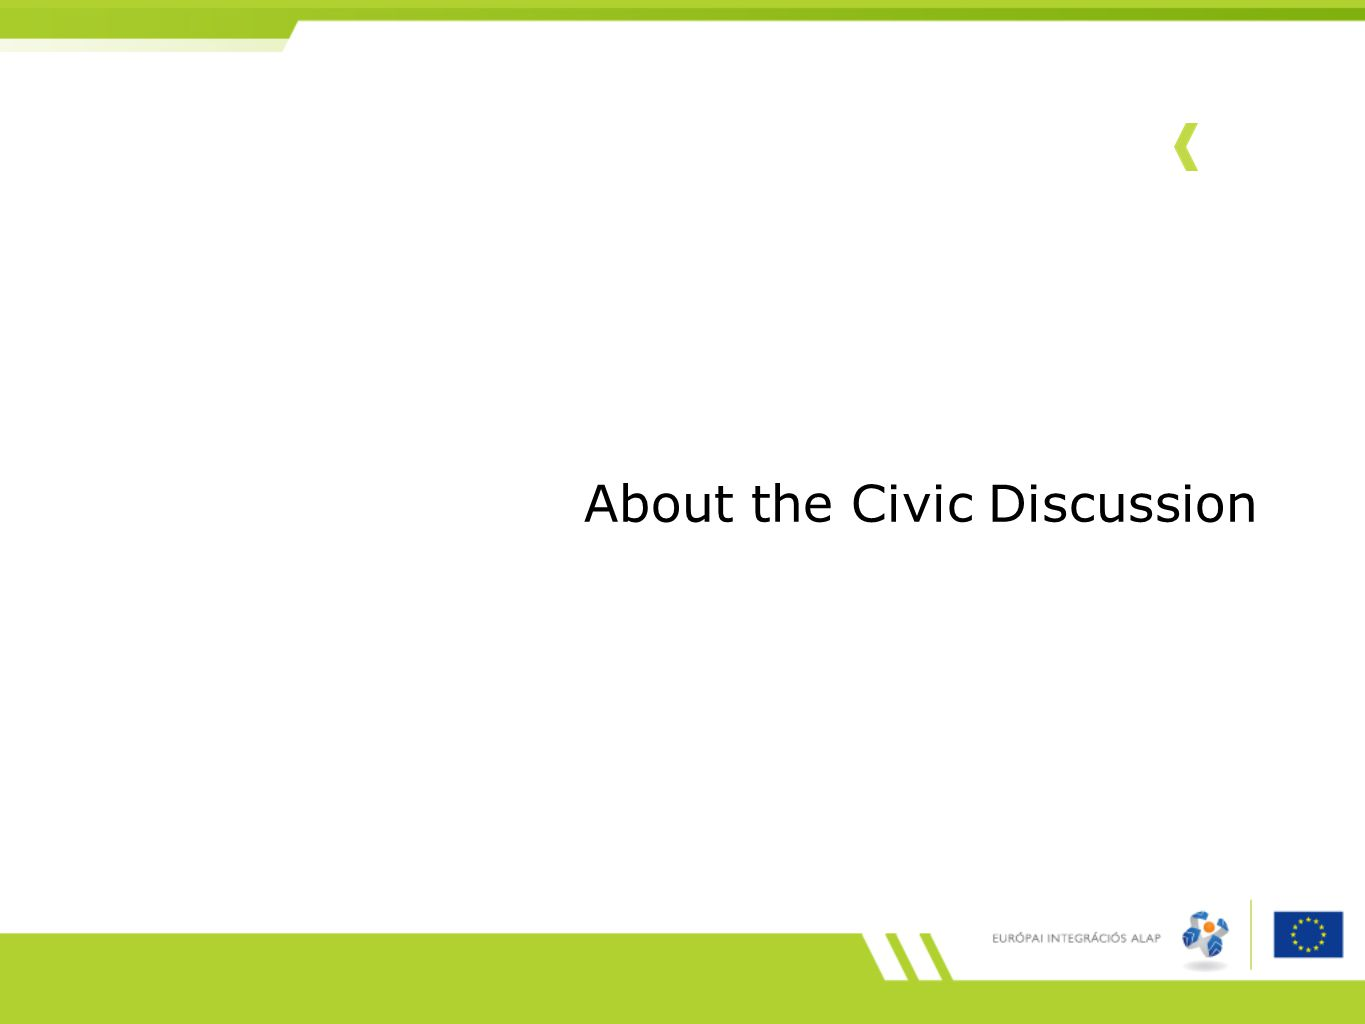 About the Civic Discussion